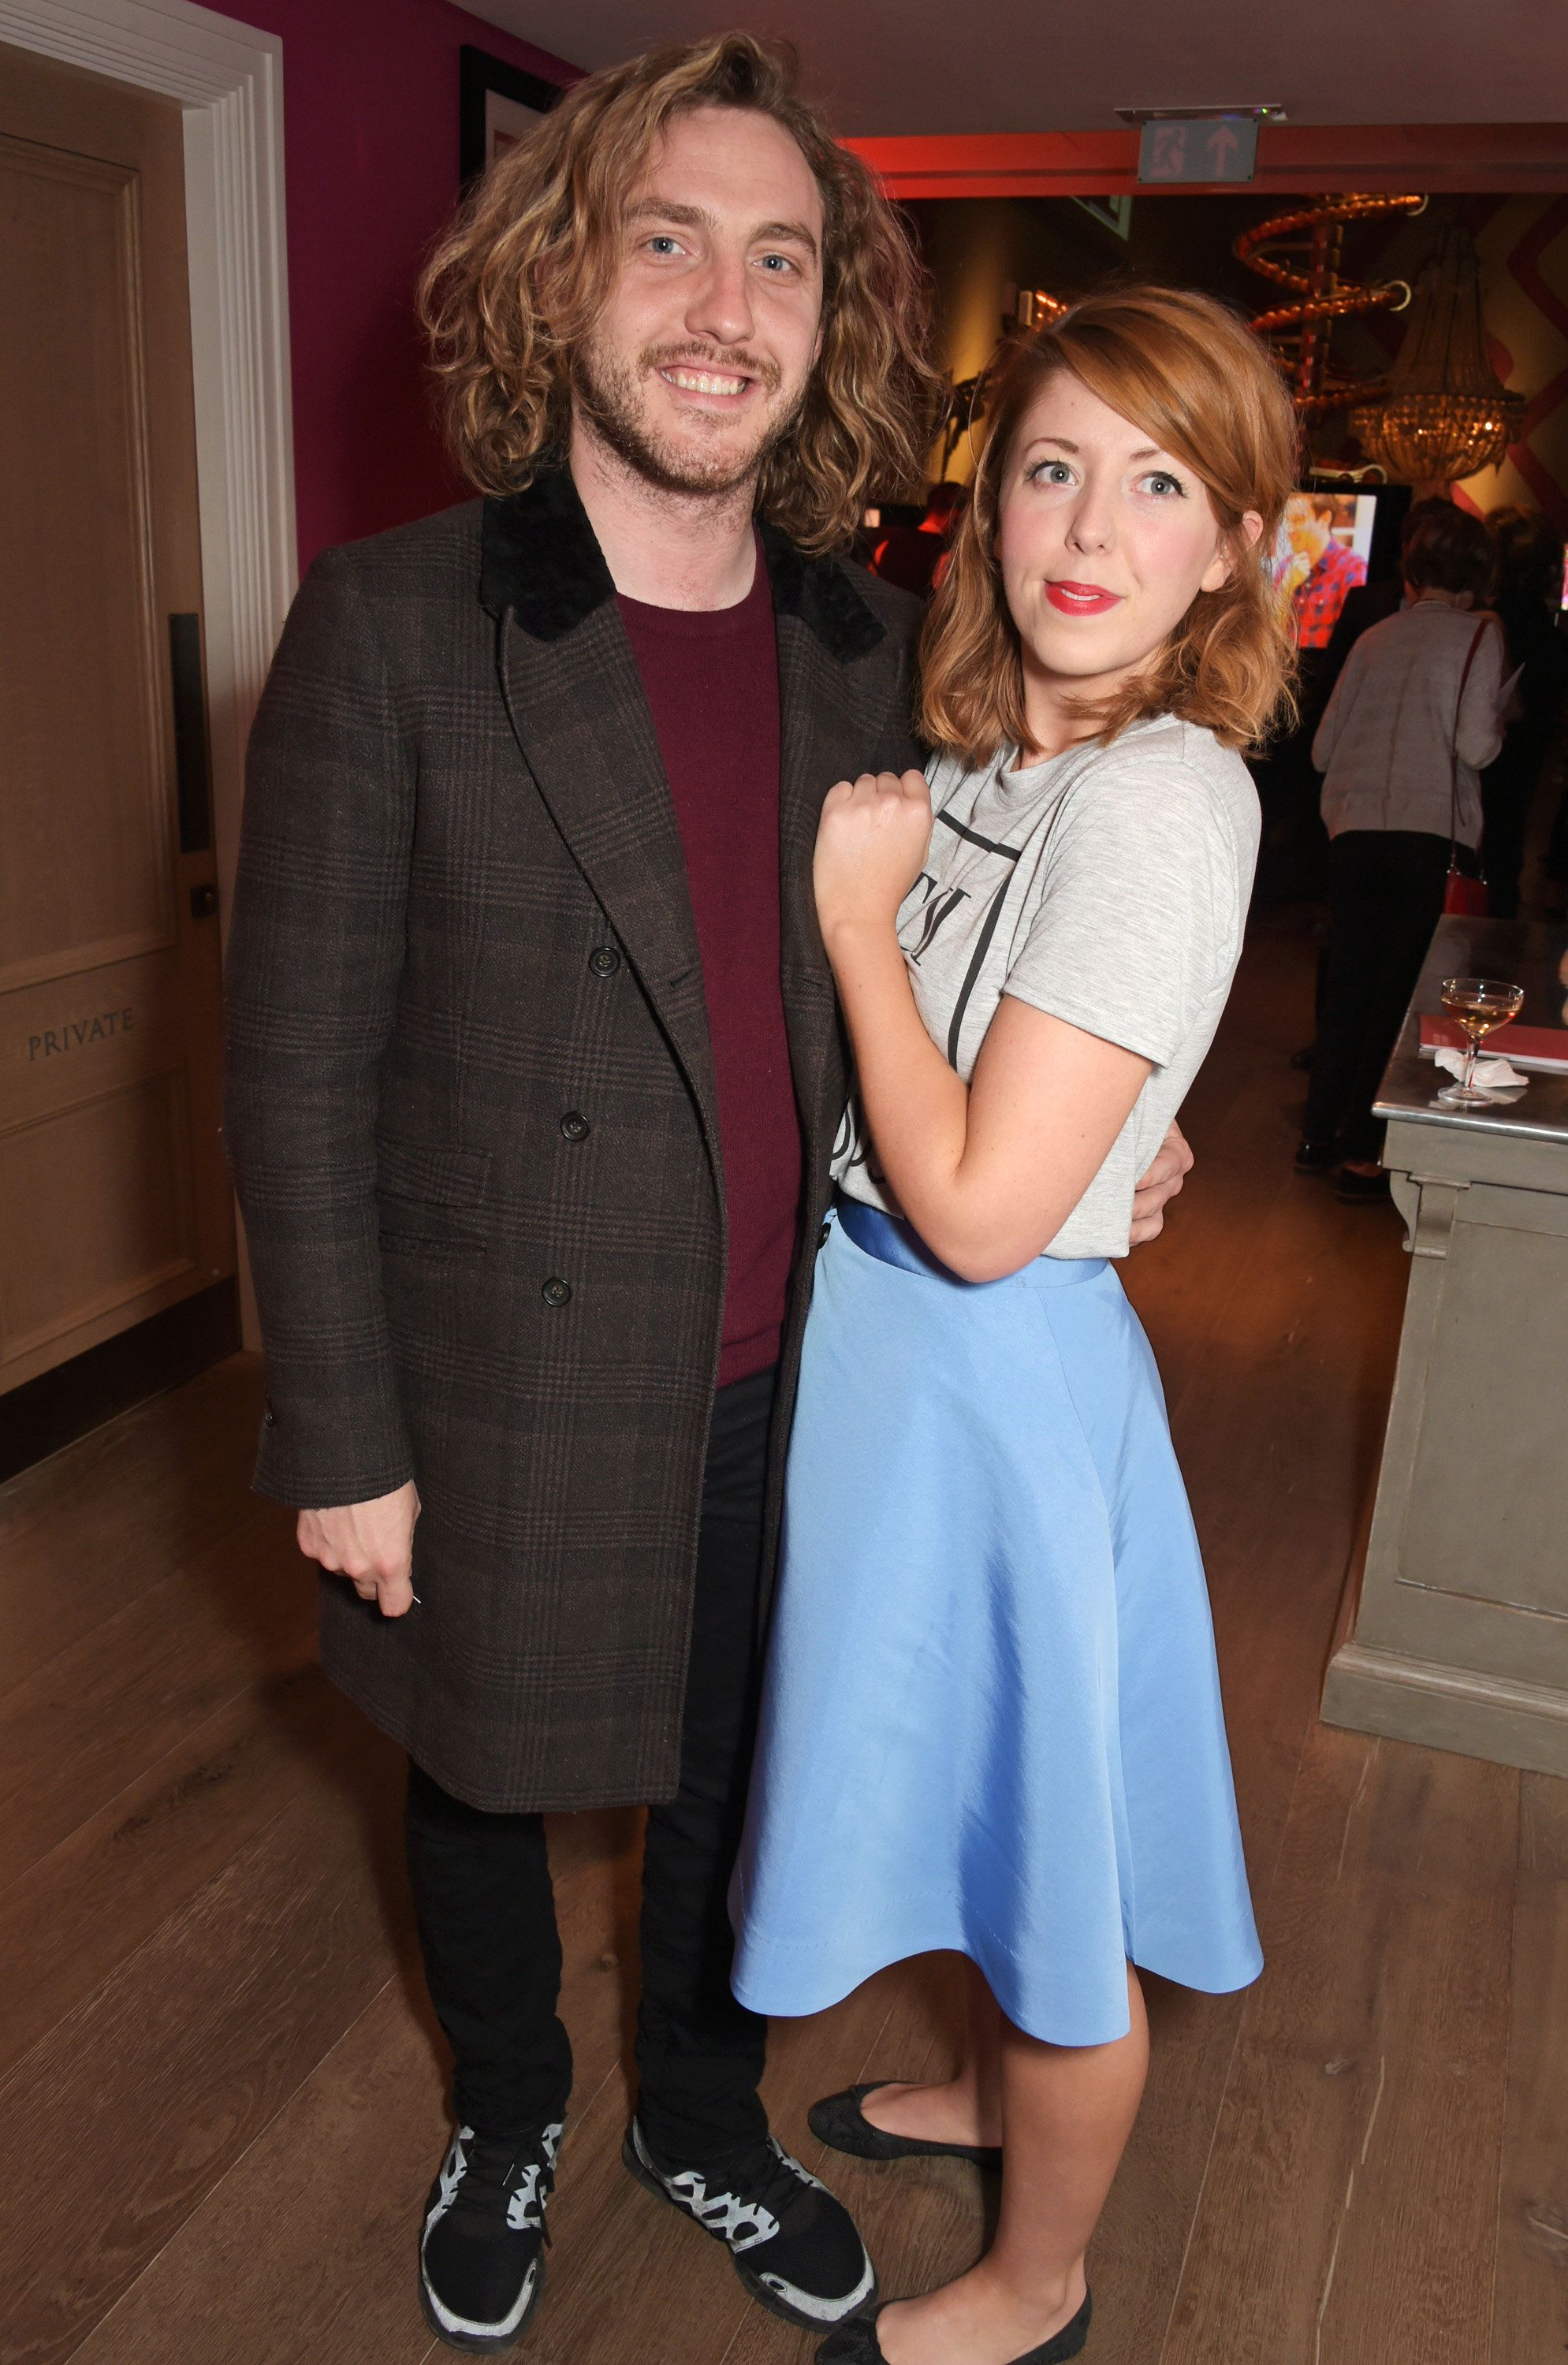 Seann and Rebecca at an event in